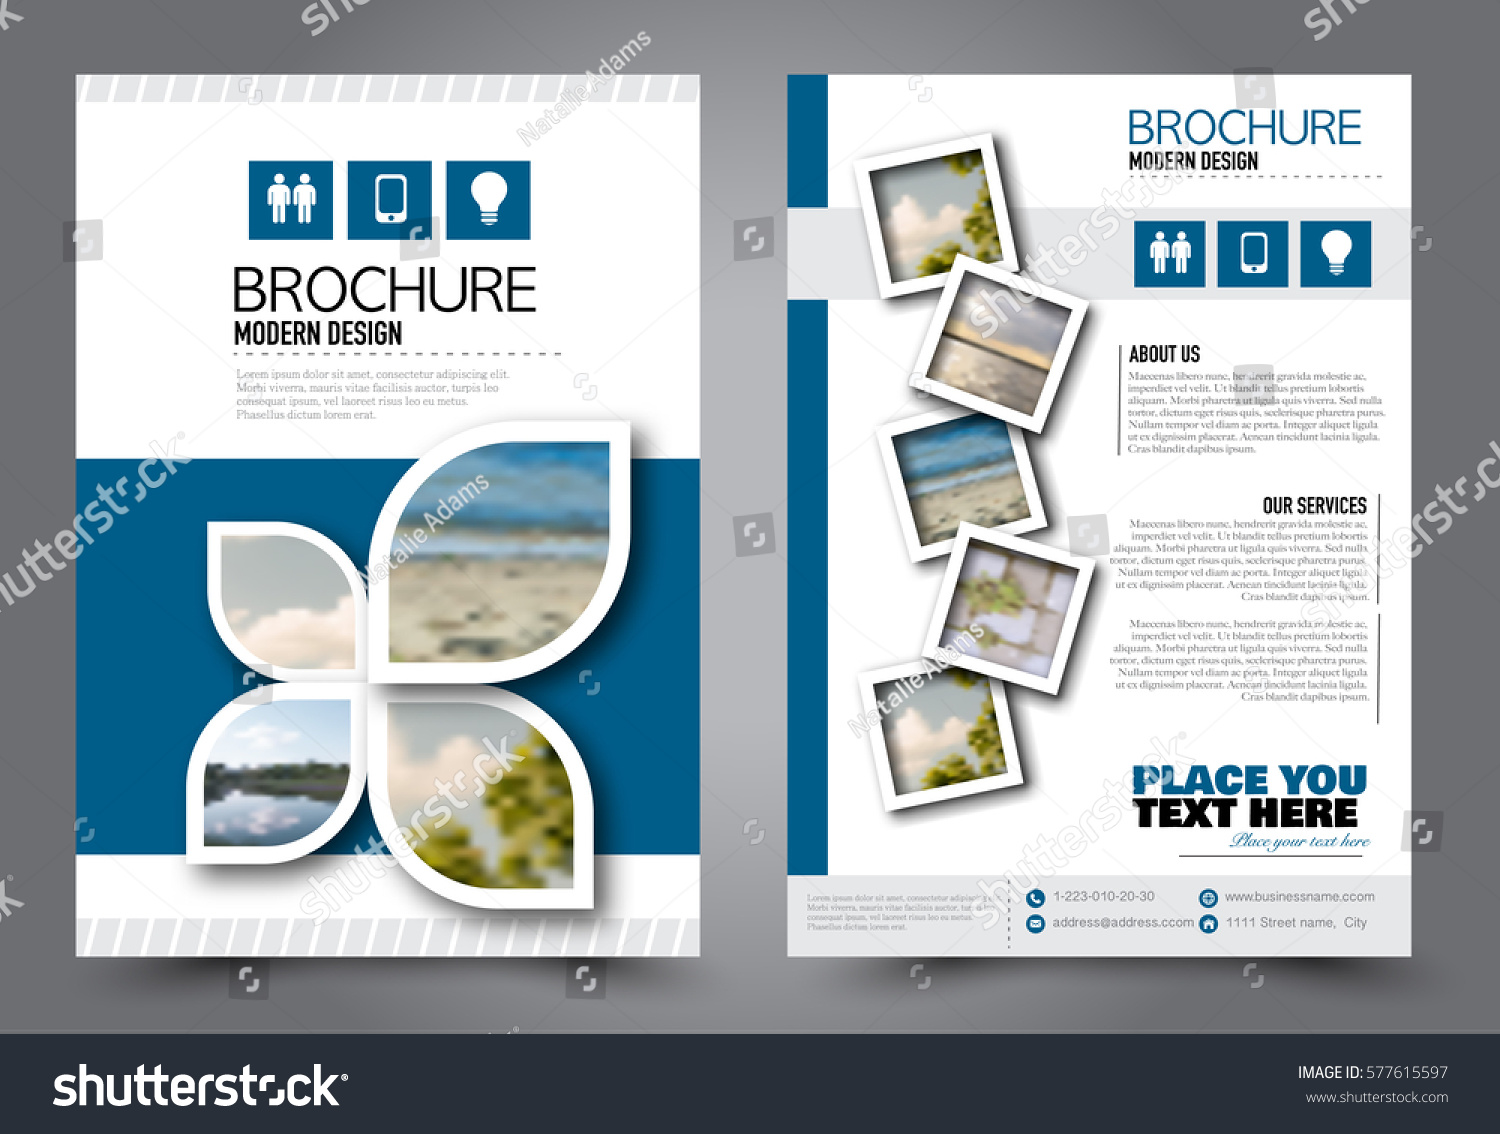 pages brochure templates free - flyer design business brochure template annual stock